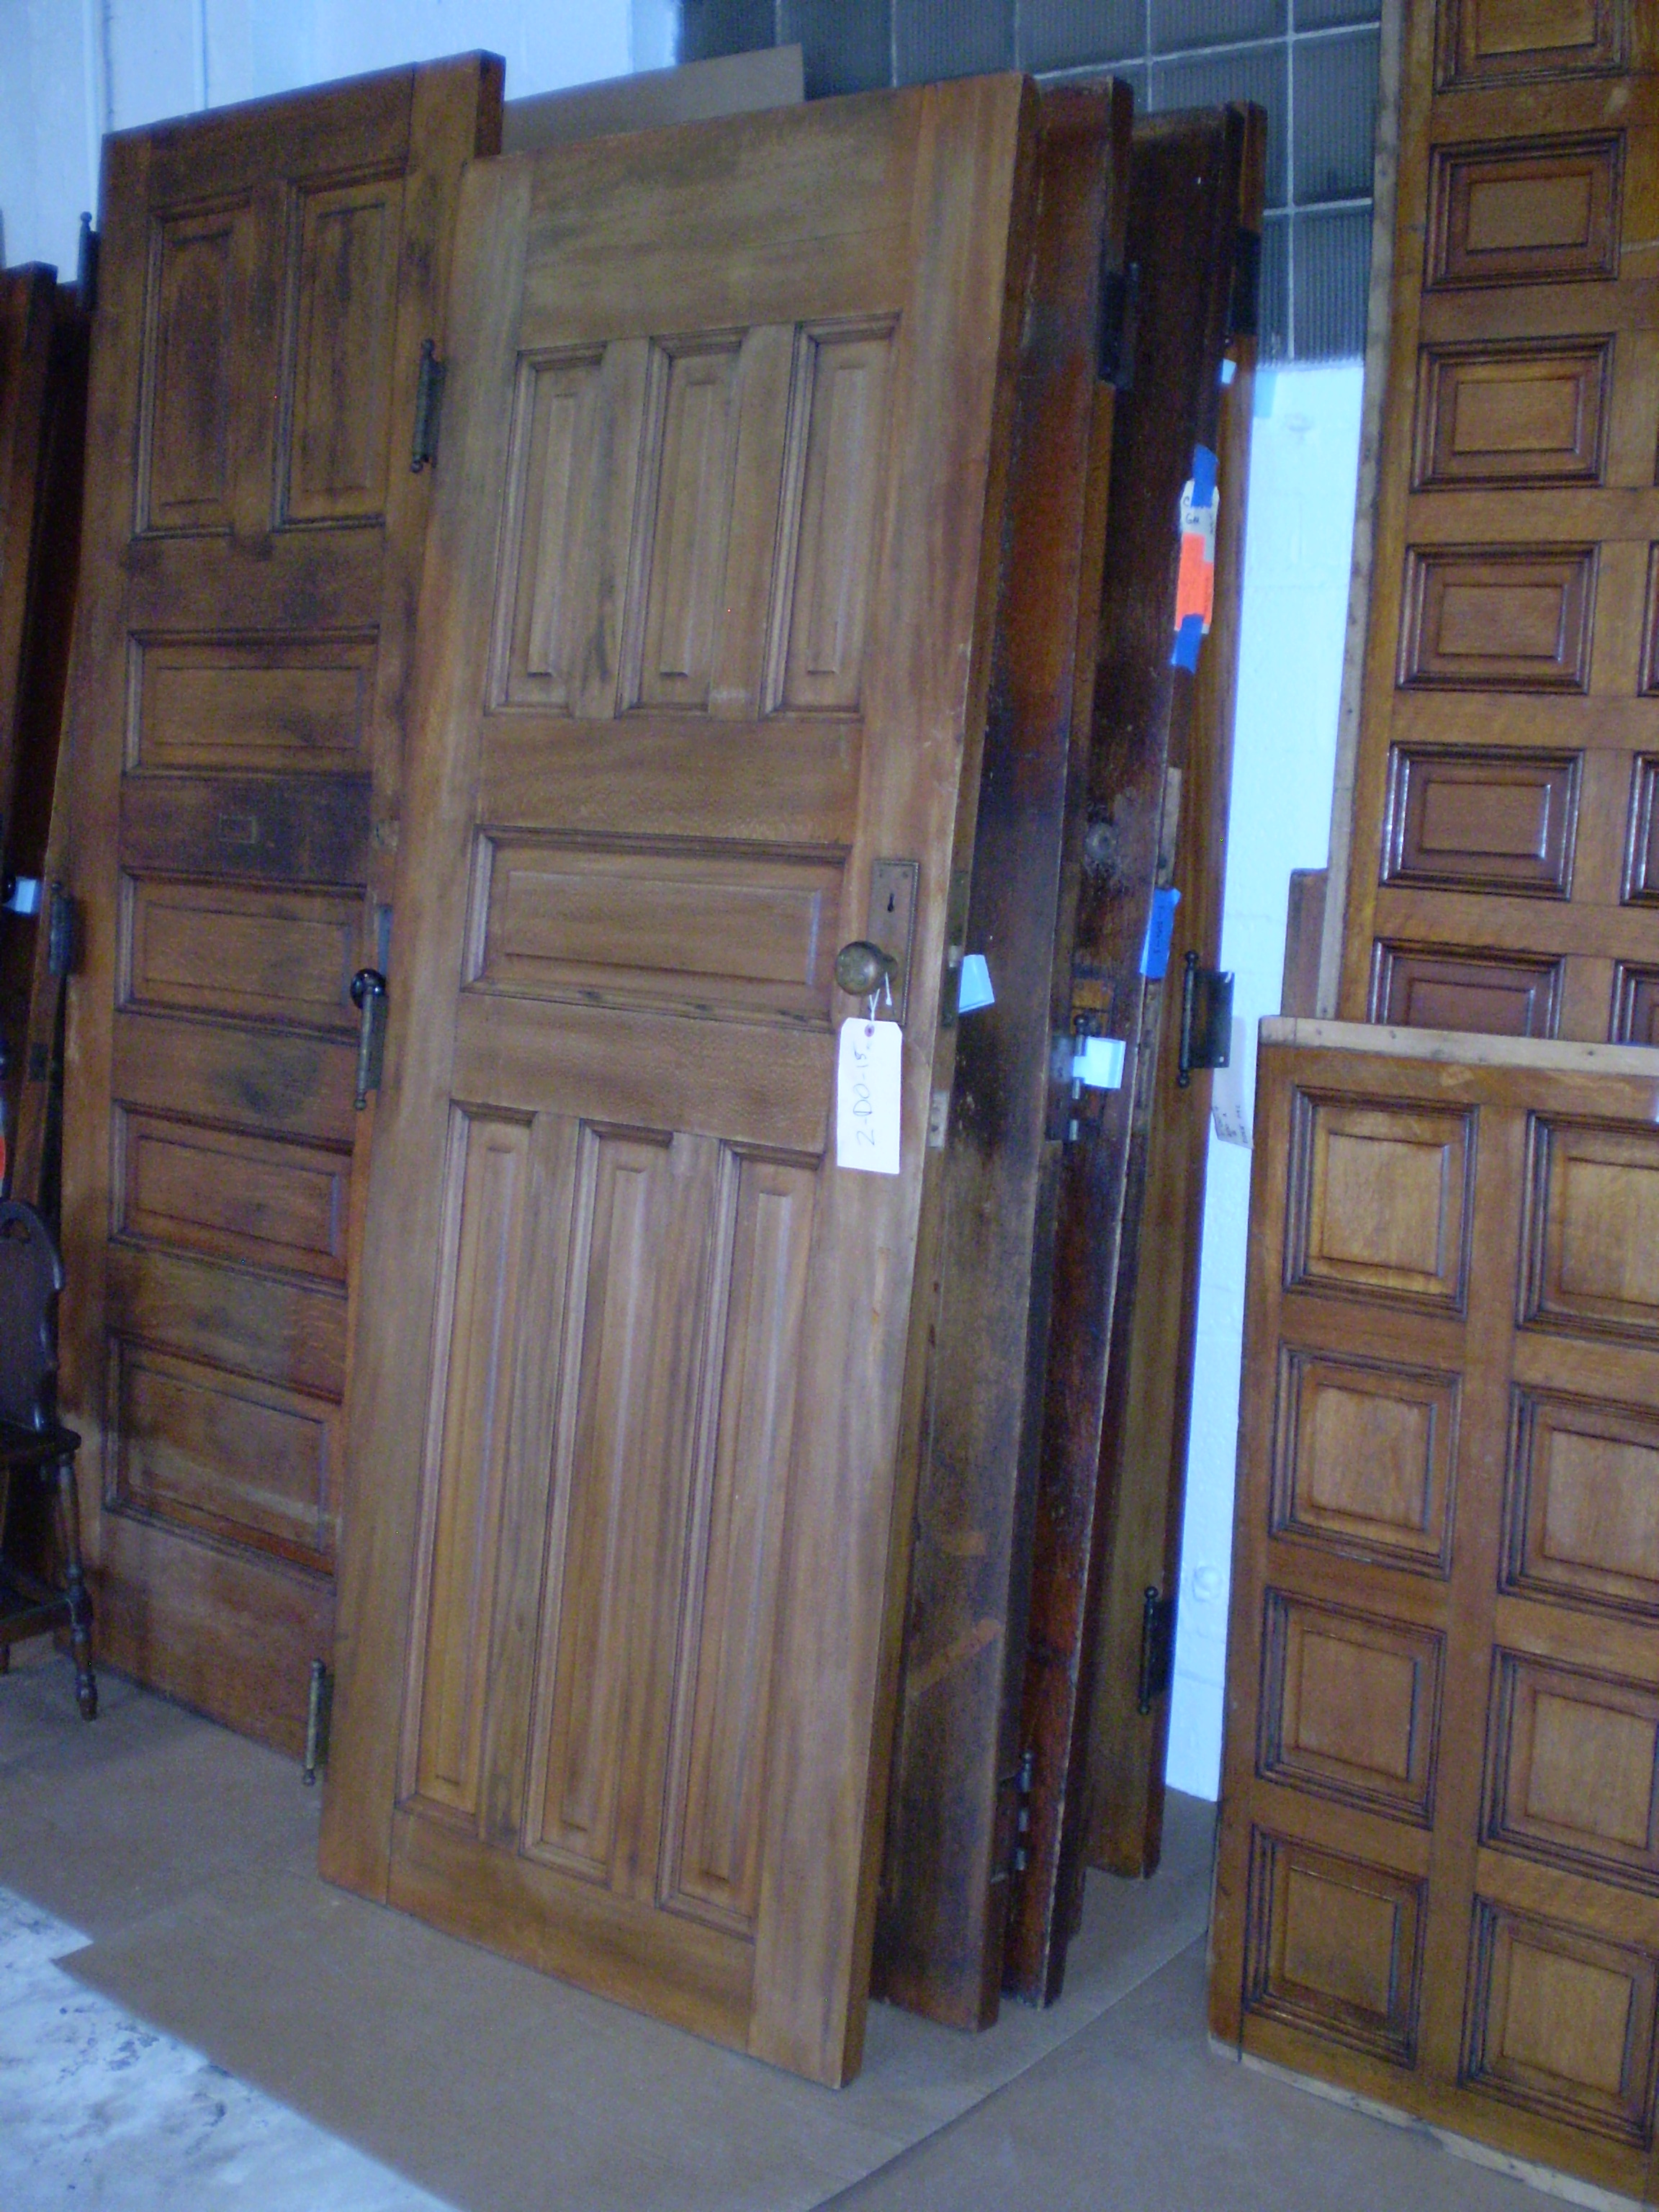 OLYMPUS DIGITAL CAMERA. Doors ... & Antique Artifacts from the Middaugh Mansion for Sale | Clarendon ...